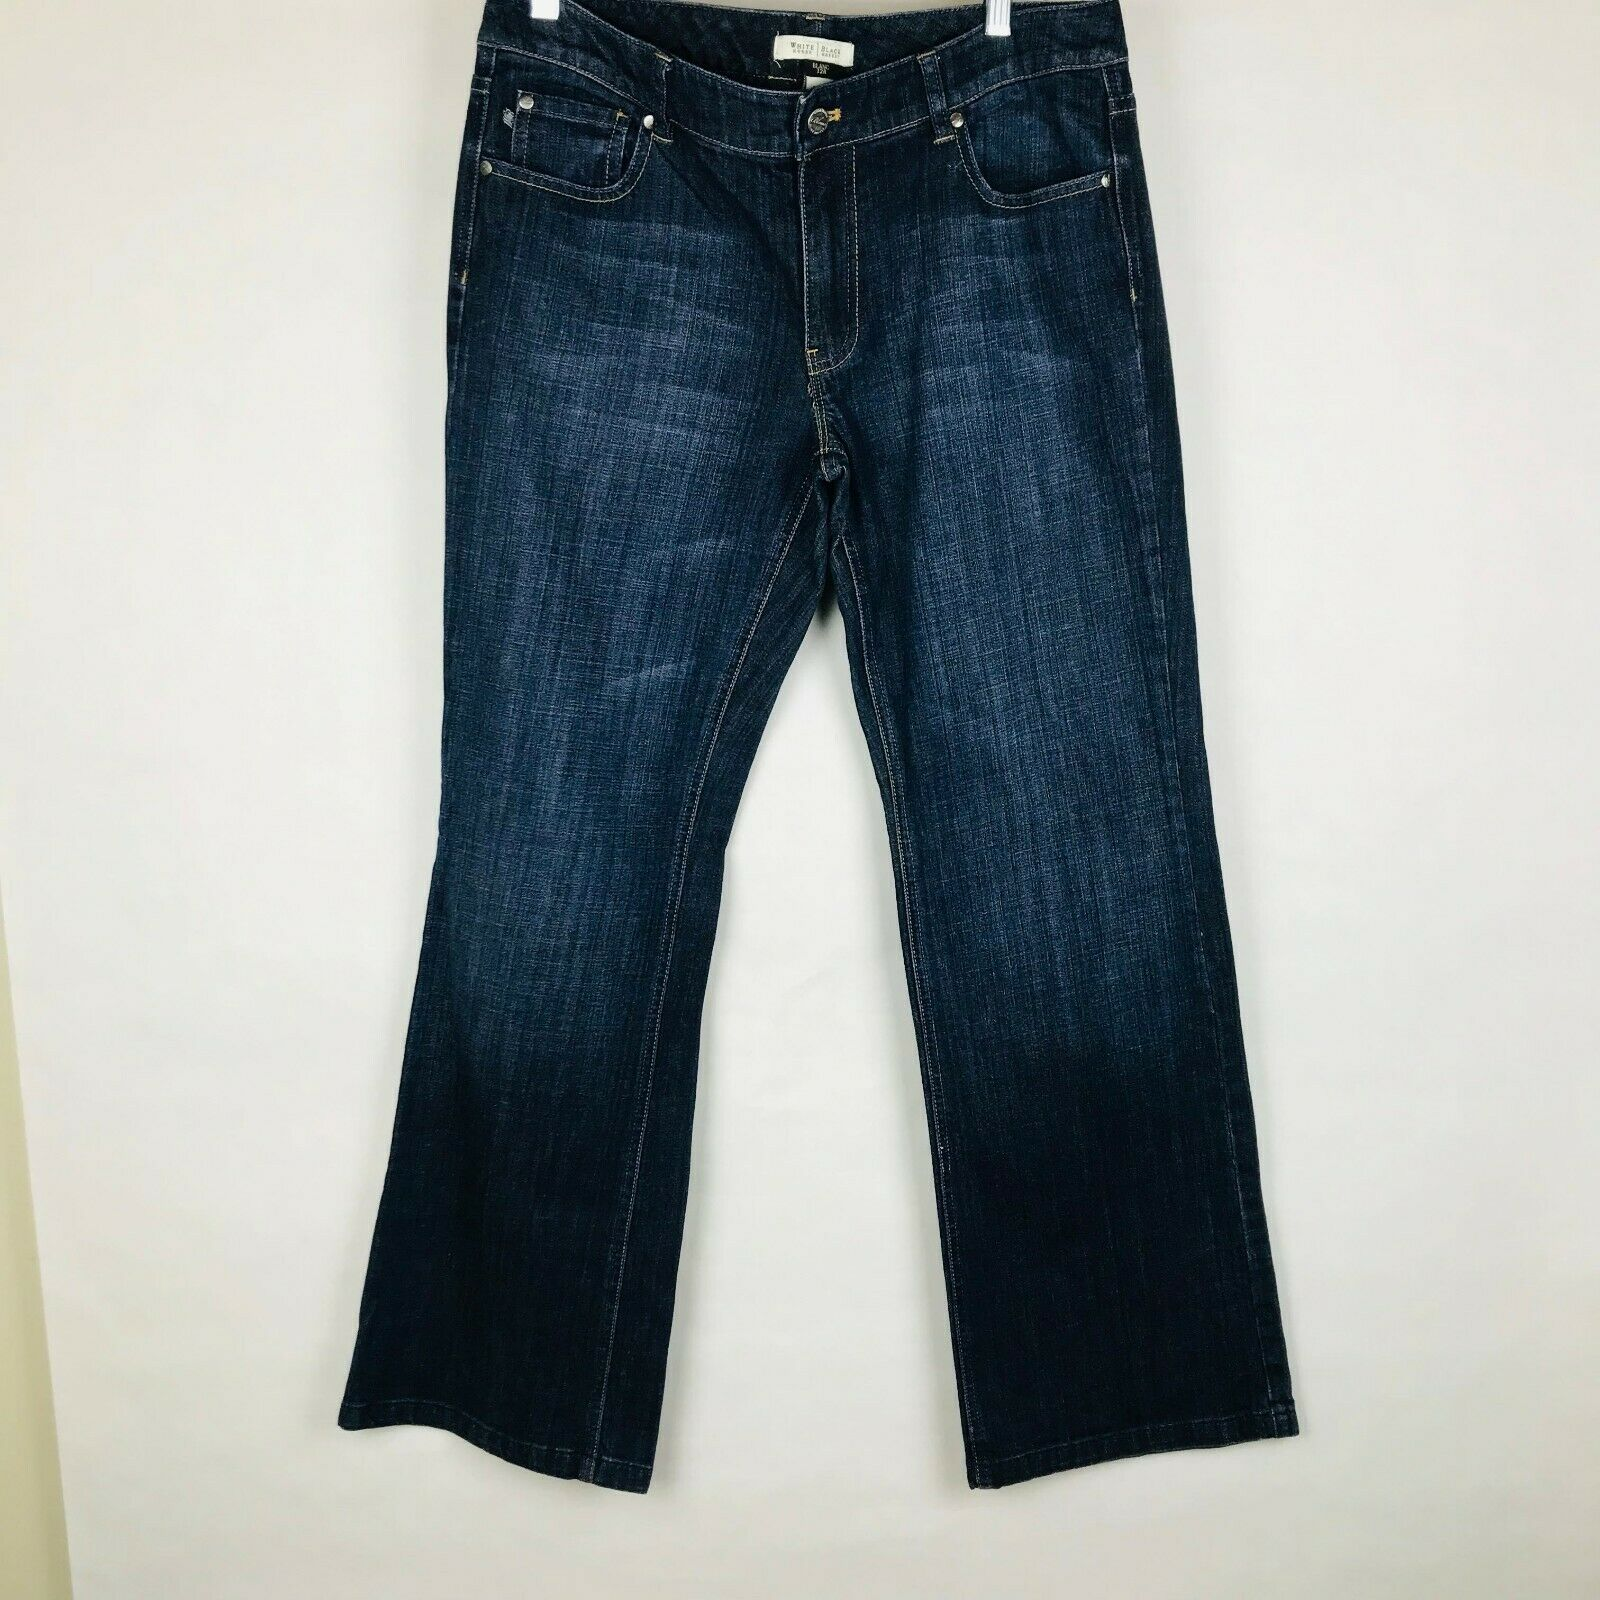 7 For All Mankind Womens Size 30 Kimmie Boot Jeans